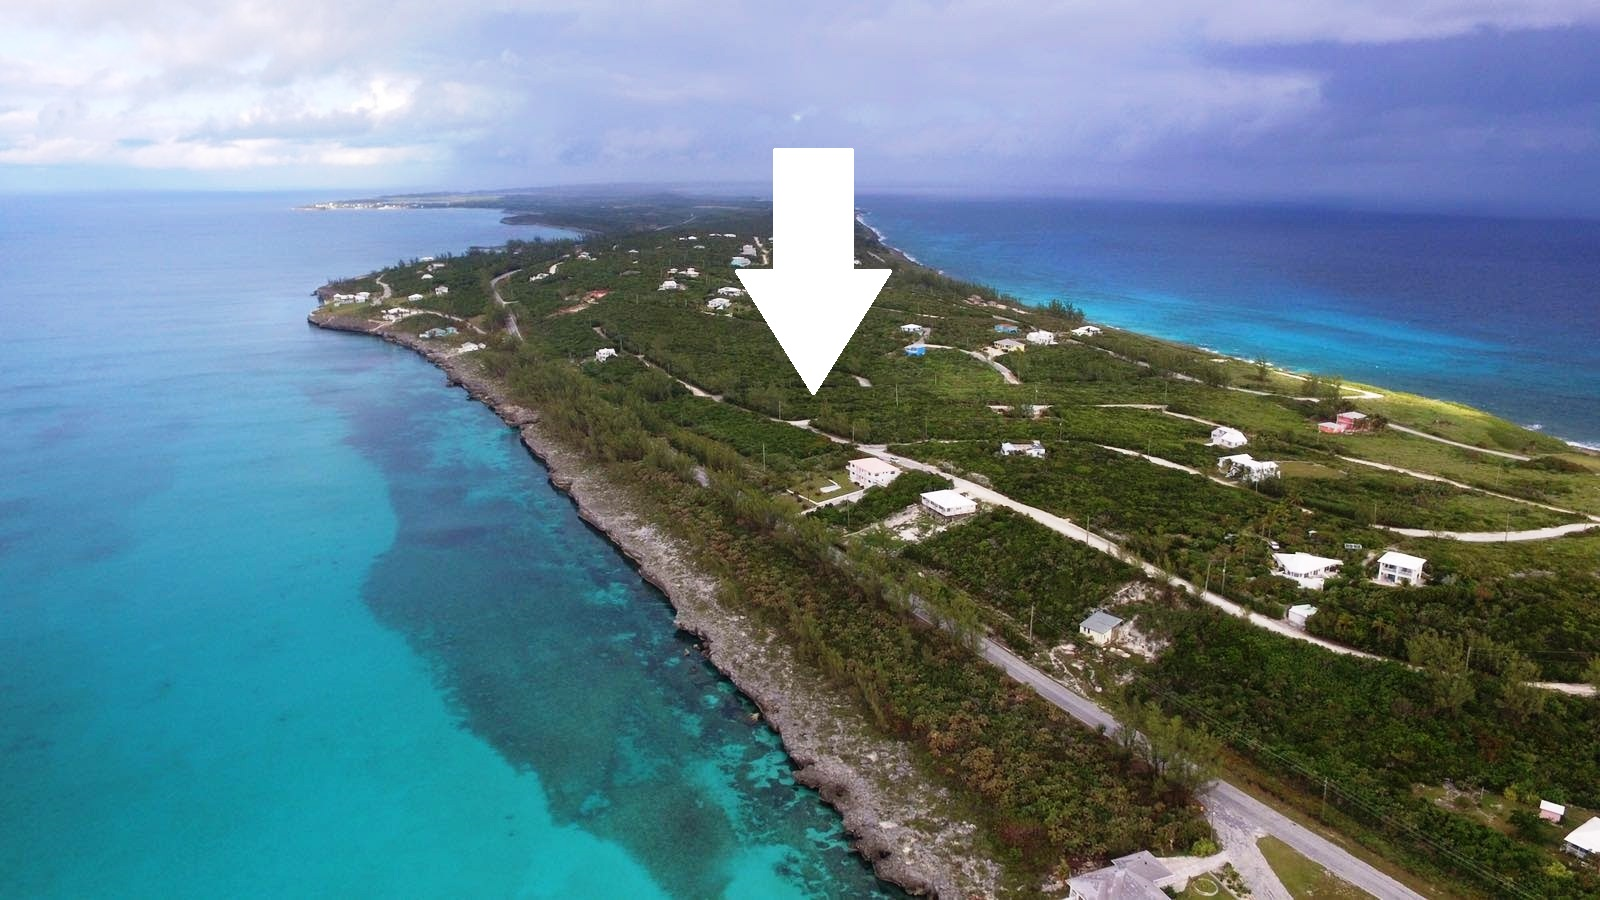 Land for Sale at Cross Island Drive Residential Lot - MLS 30263 Rainbow Bay, Eleuthera, Bahamas